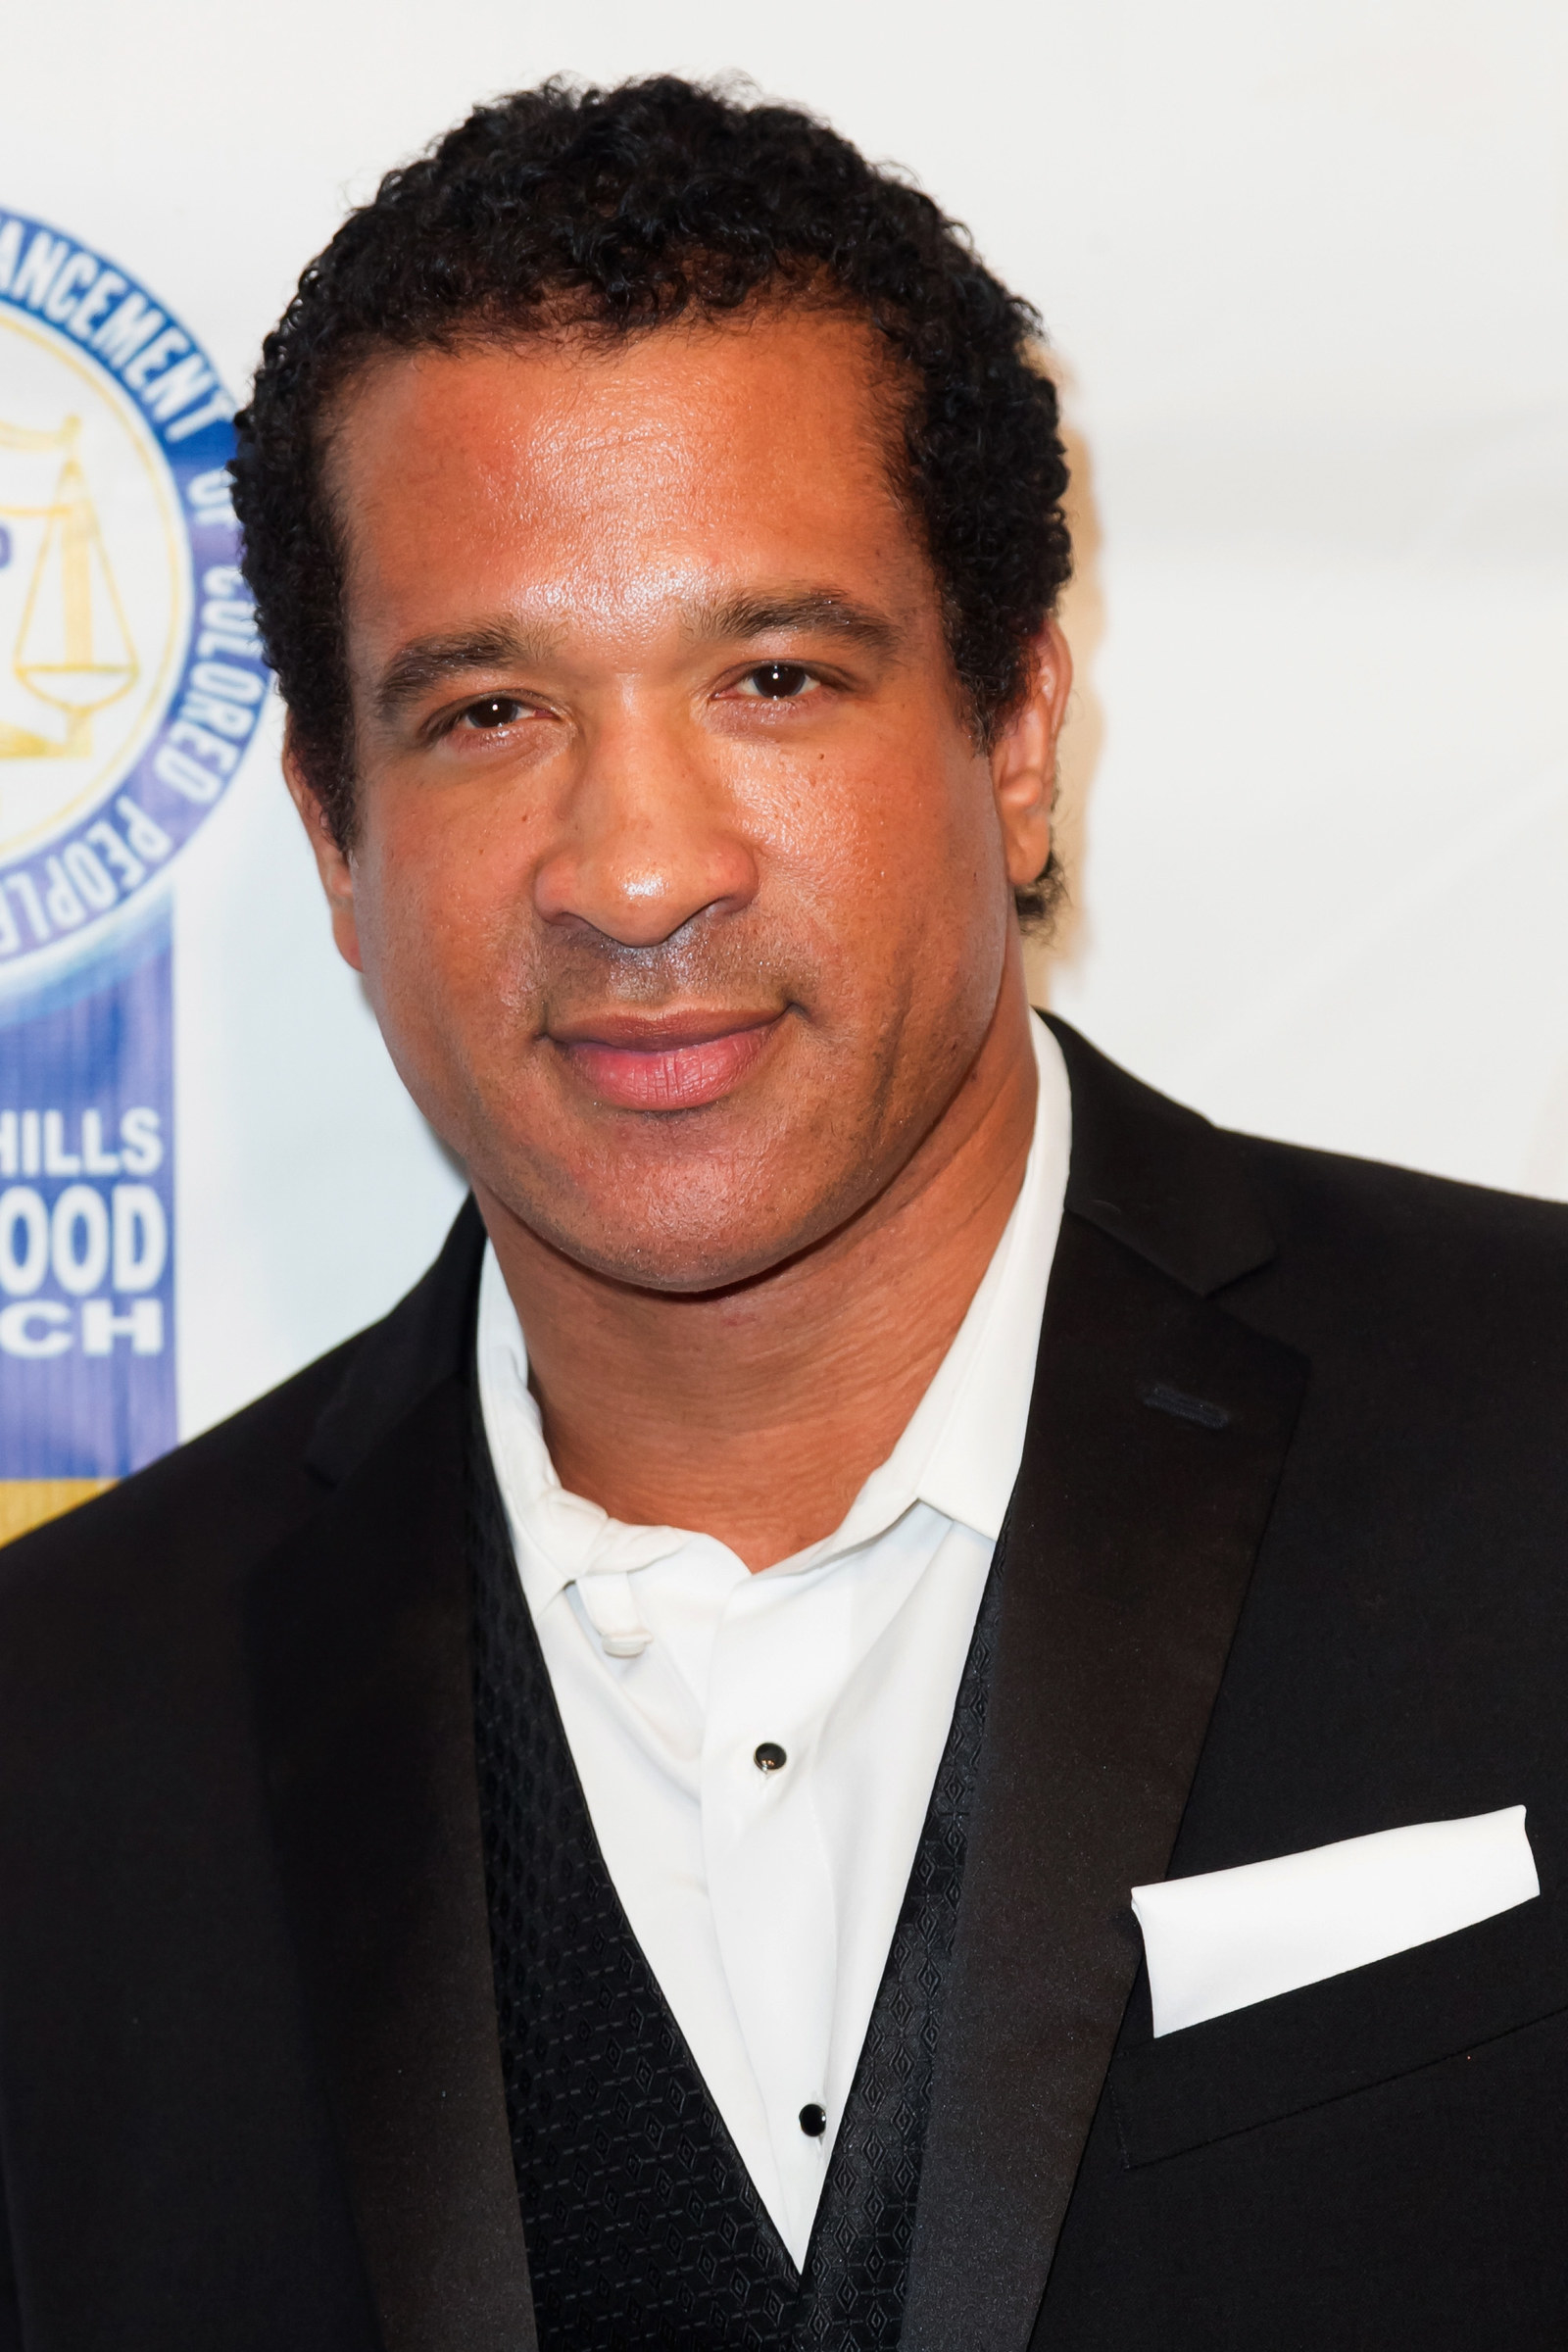 Dorian Gregory as Darryl Morris - What they're up to now:  Dorian has had guest roles on shows such as  Without a Trace  and  Agents of S.H.I.E.L.D.